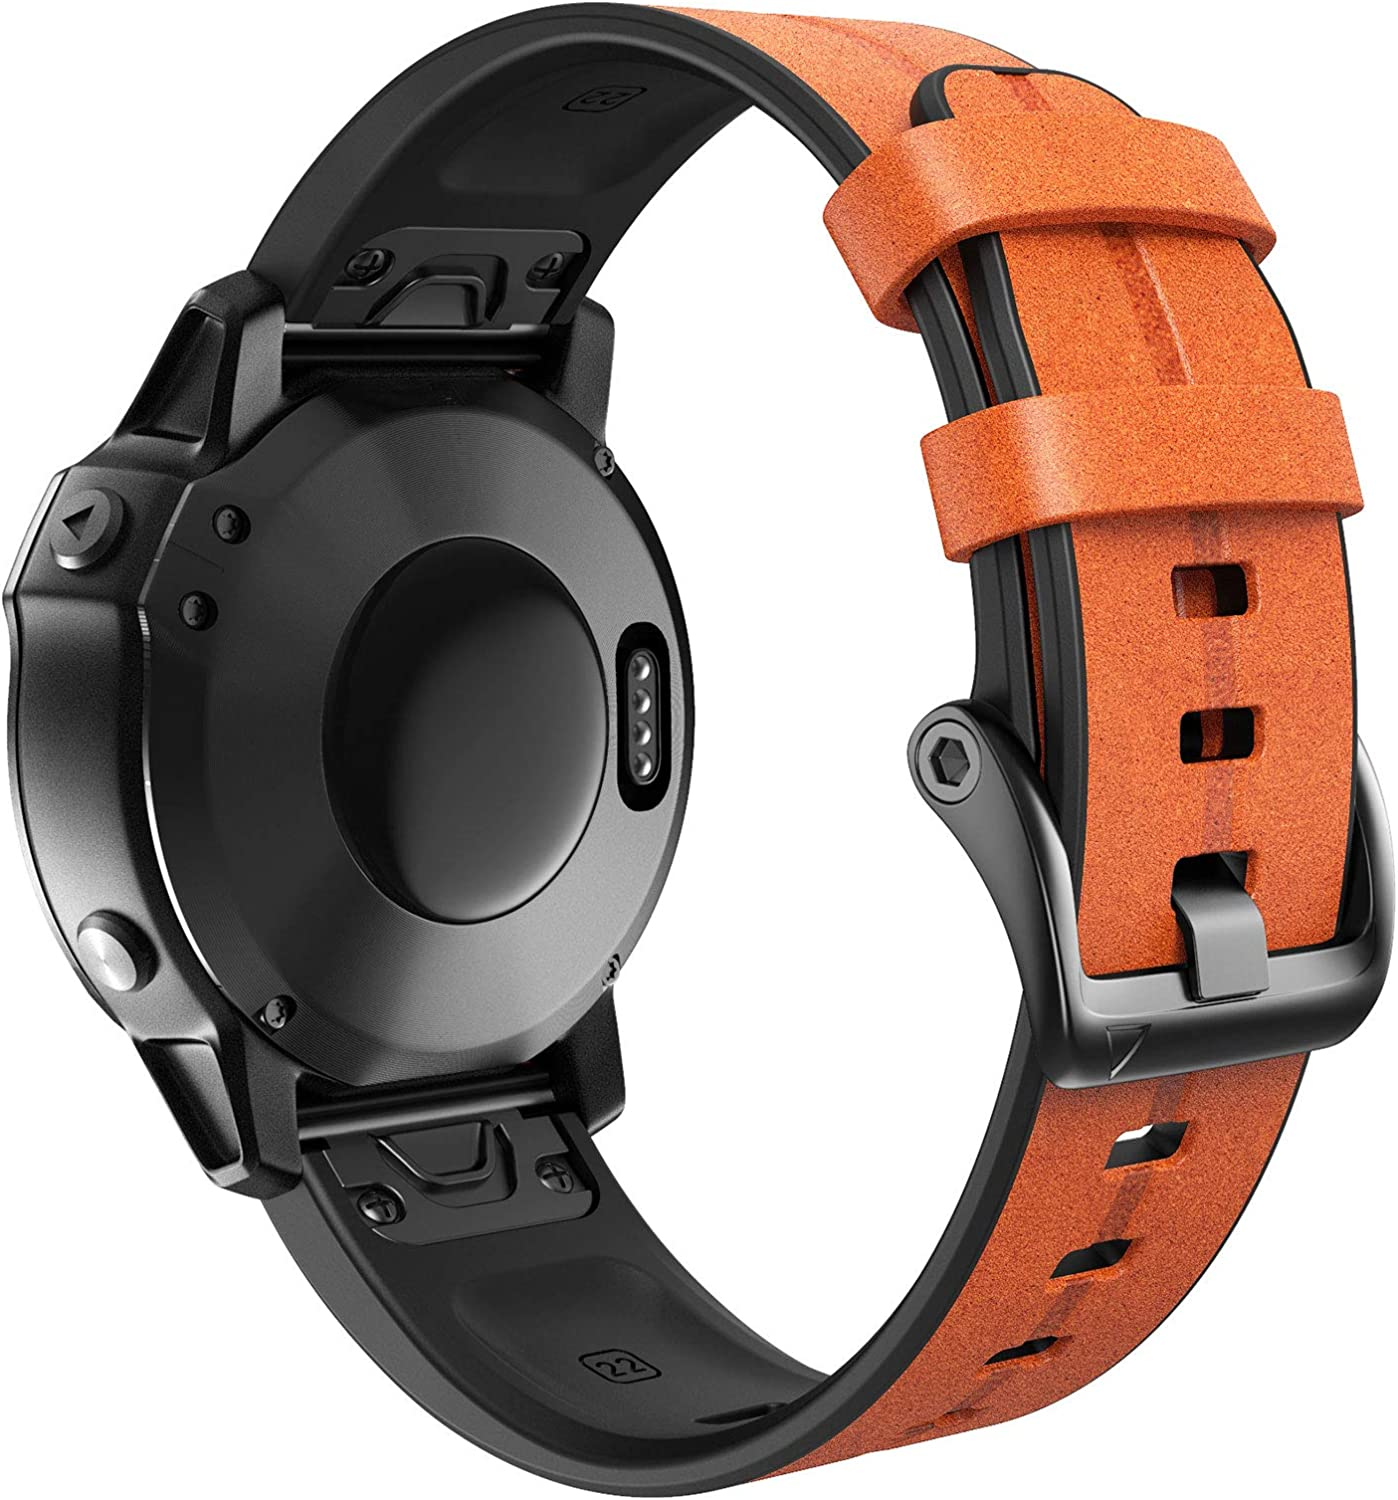 ANCOOL Compatible Fenix Don't miss the campaign 5 Band Ban Silicone Width Max 44% OFF Easy-fit 22mm